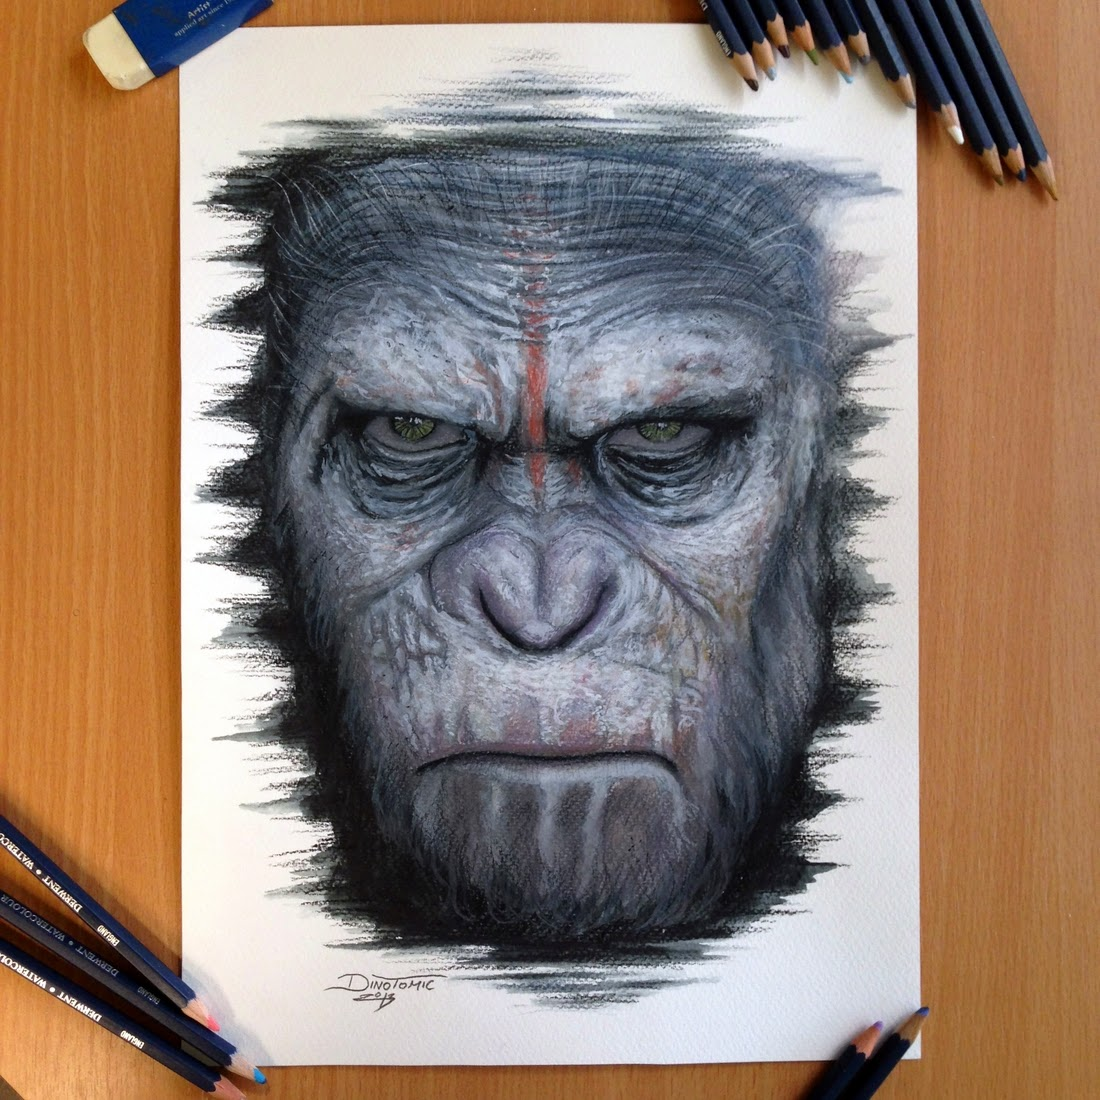 25-Caesar-Planet-of-the-Apes-Dino-Tomic-AtomiccircuS-Mastering-Art-in-Eclectic-Drawings-www-designstack-co